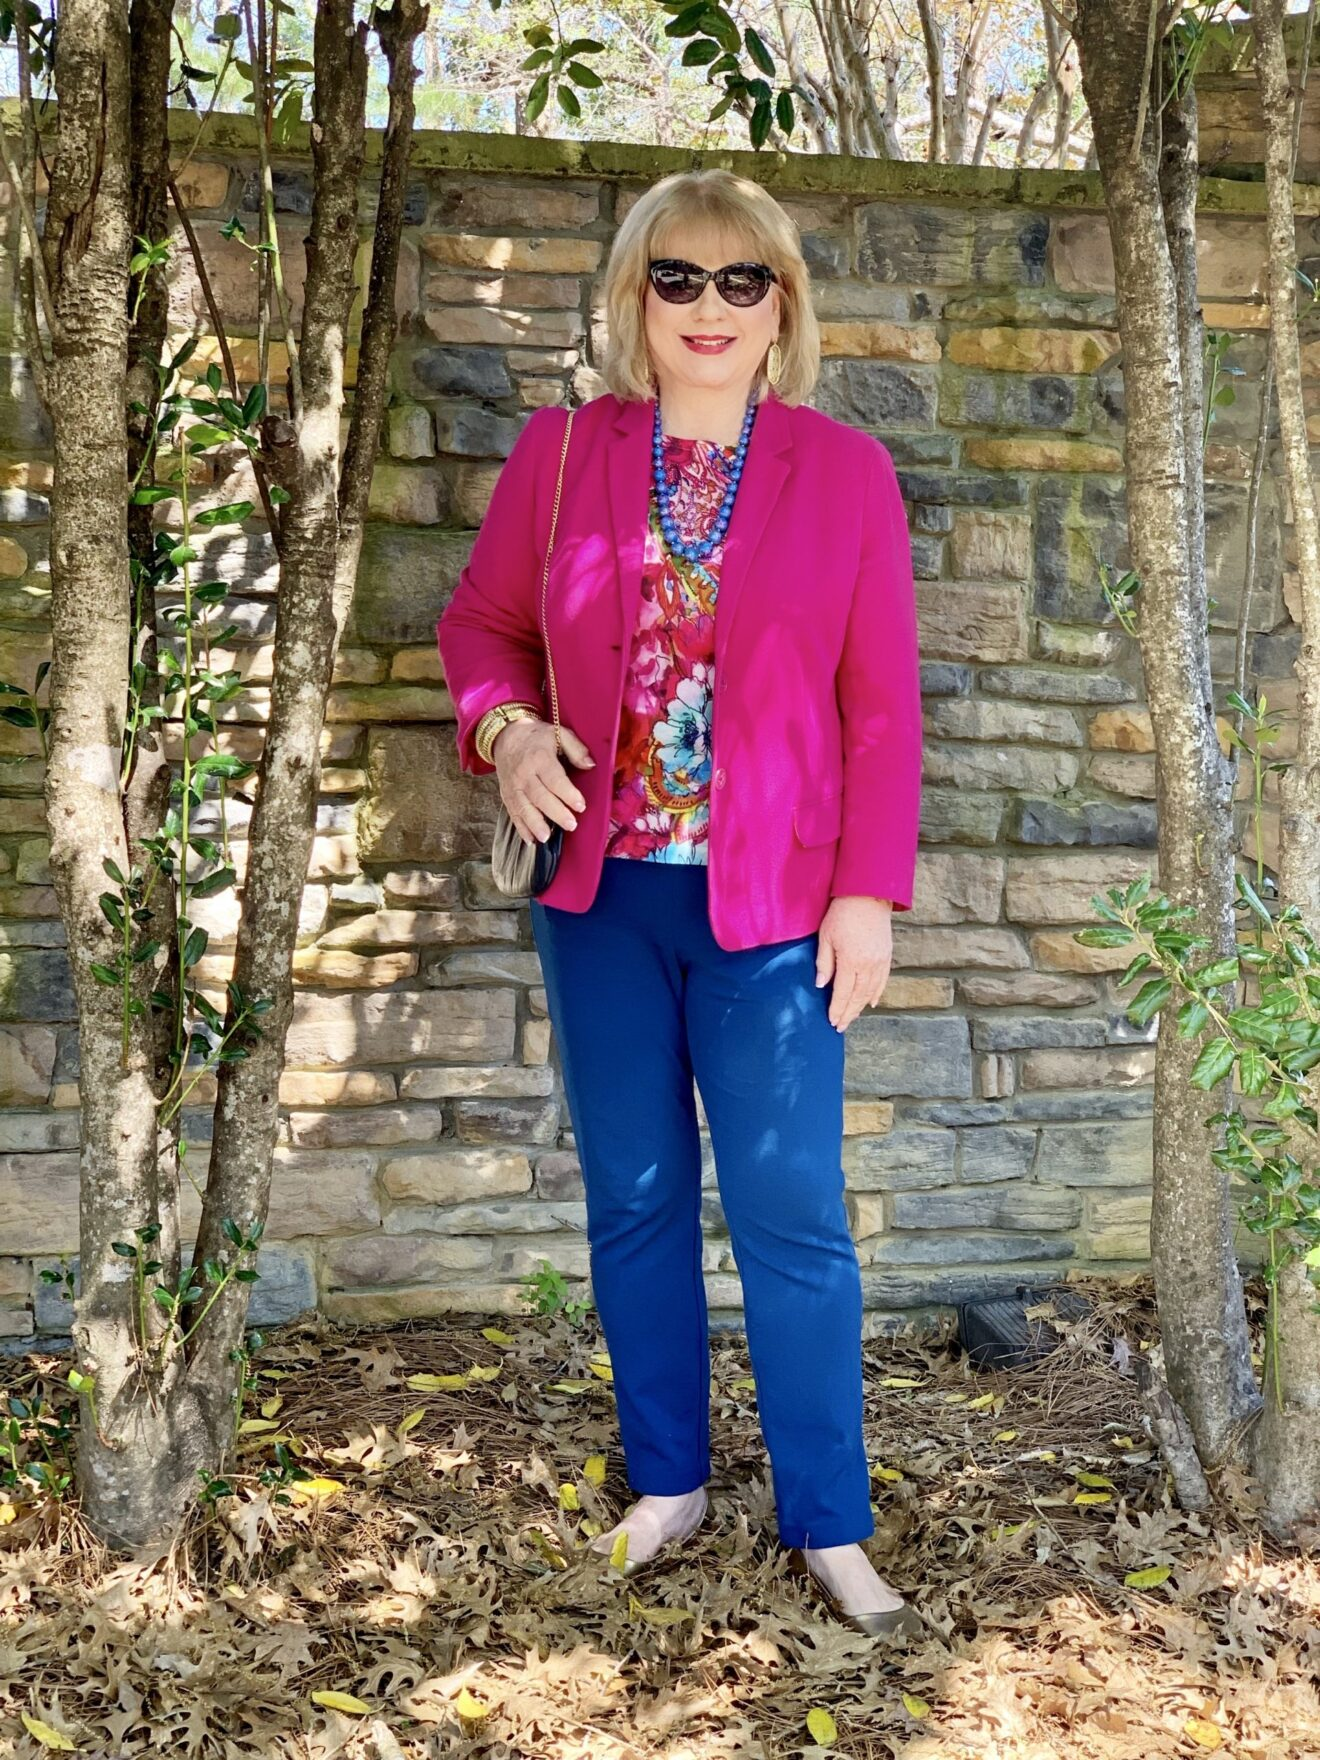 Style Story Interview Classy Colorful Confidence @StyleShennanigans Shannon Holmes Fashion Over 50 60 Confident Bright Multi Color Floral Outfit Story Behind The Cloth scaled